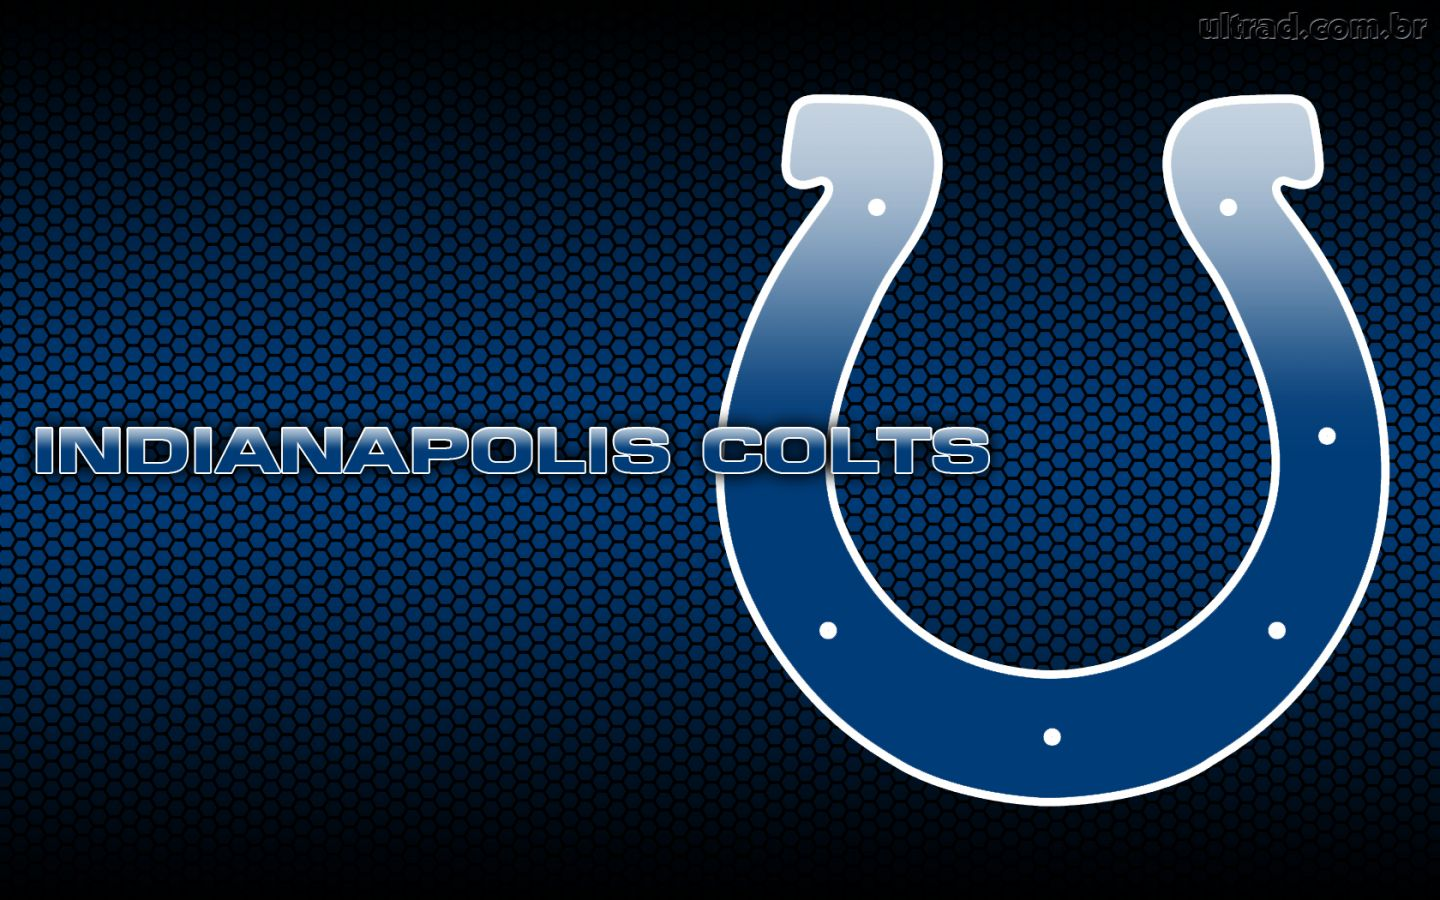 Buy Indianapolis Colts Tickets